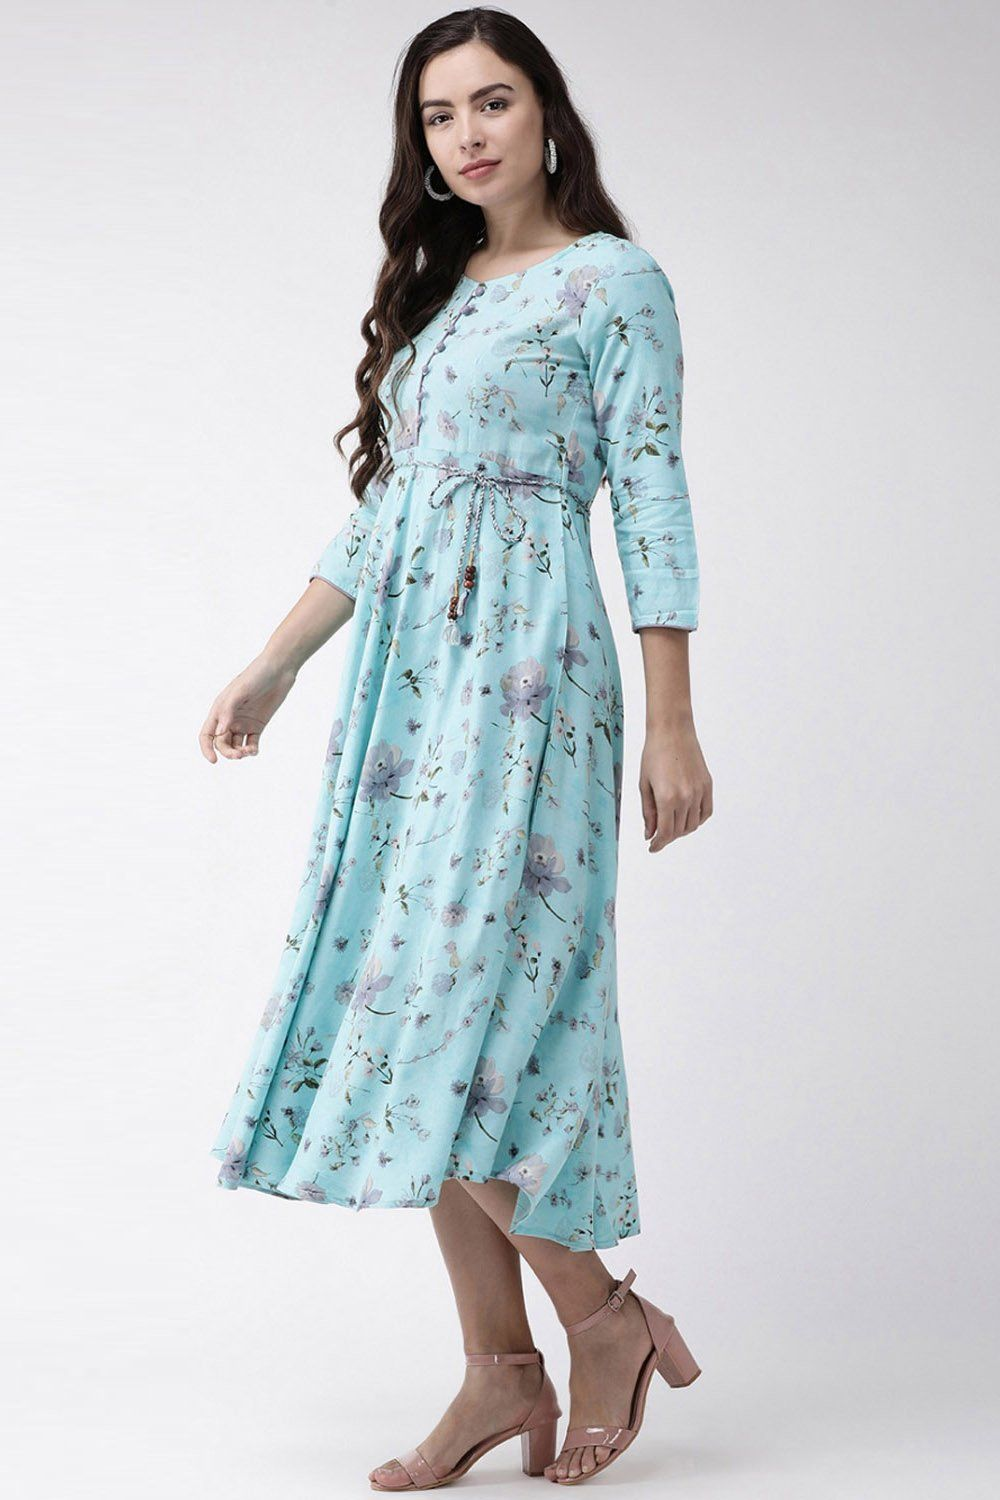 Viscose Printed Maxi Dress In Turquoise Maxi Dress Printed Maxi Dress Dresses [ 1500 x 1000 Pixel ]